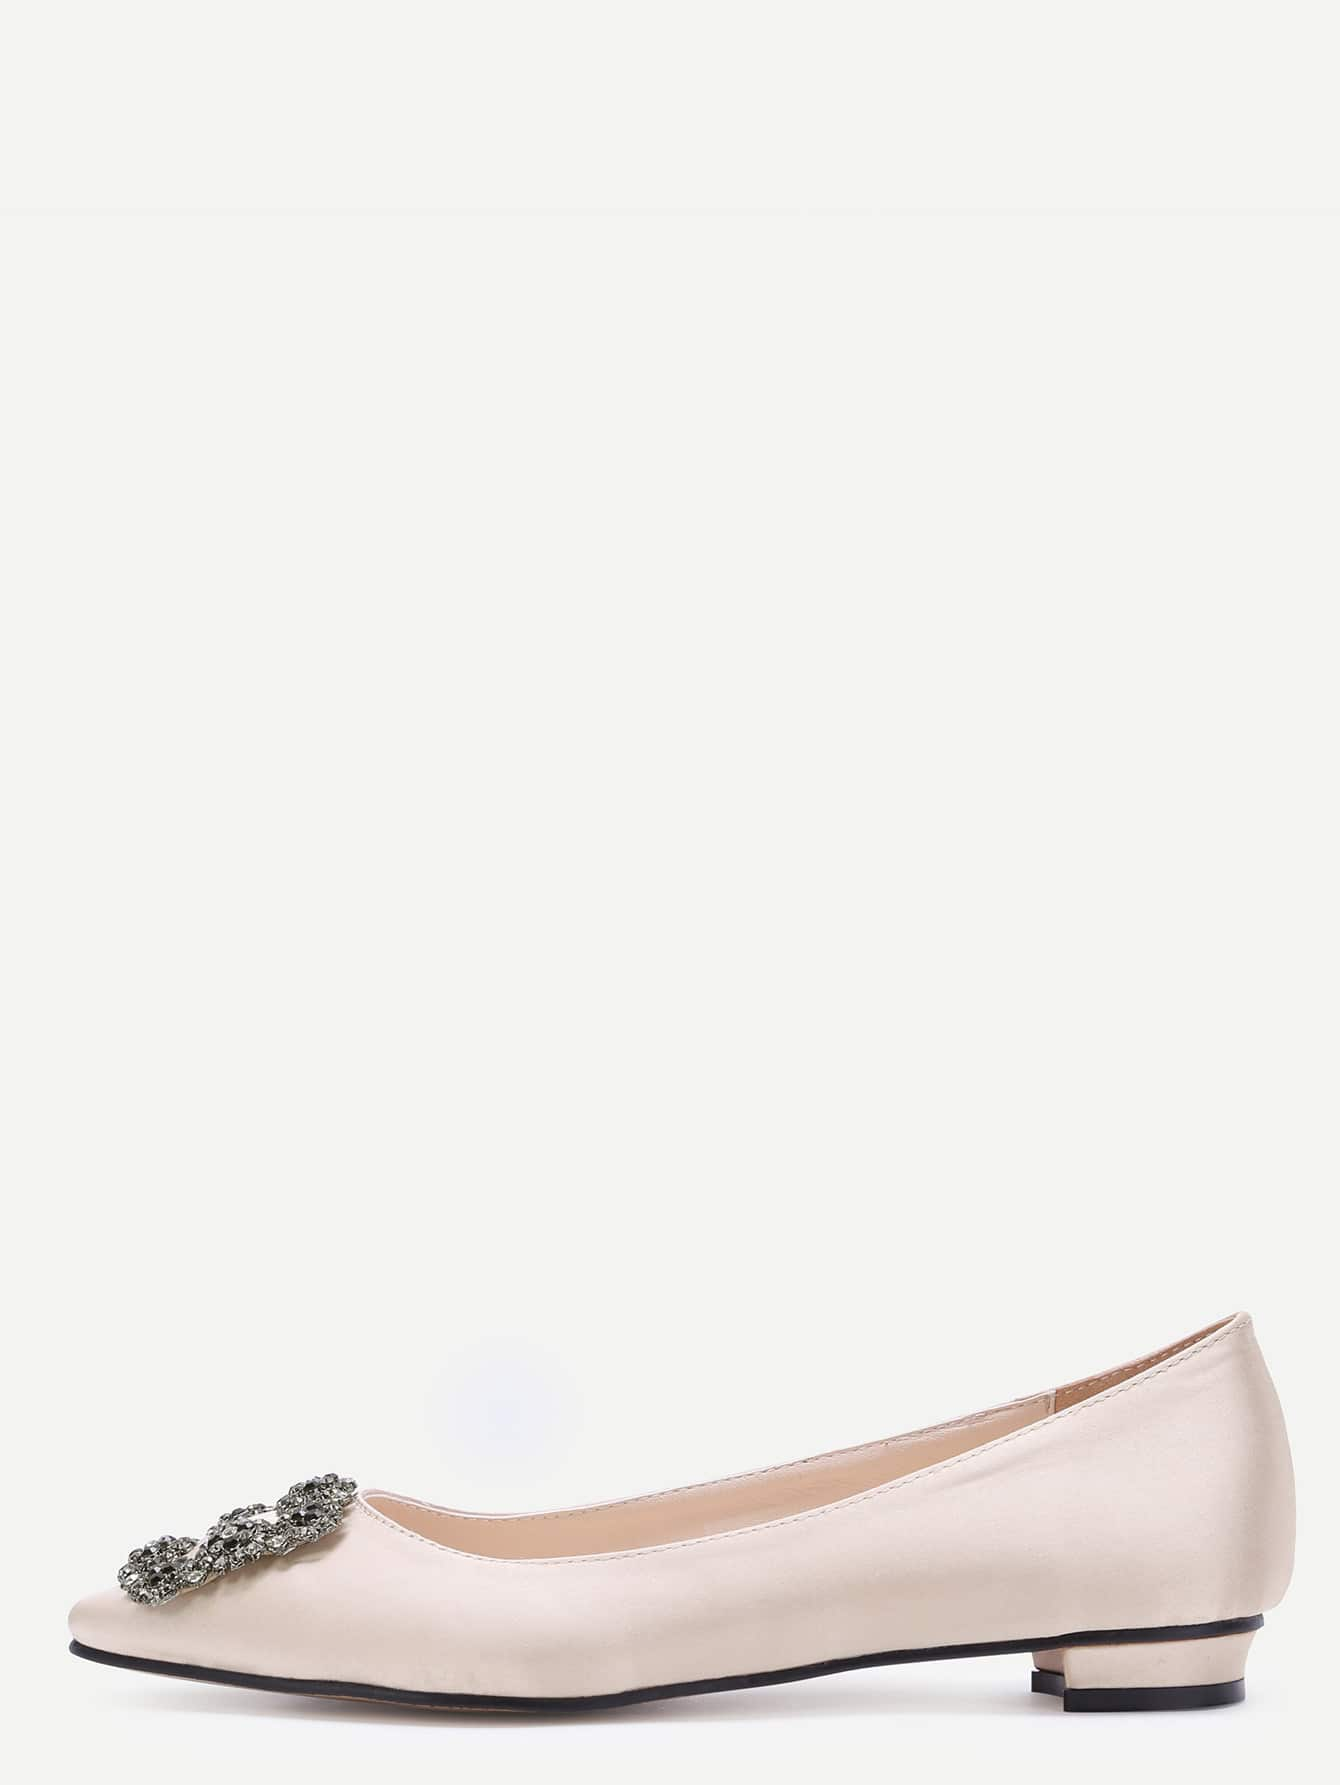 Nude Glitter Satin Rhinestone Pointed Ballet Flats shoes170104806